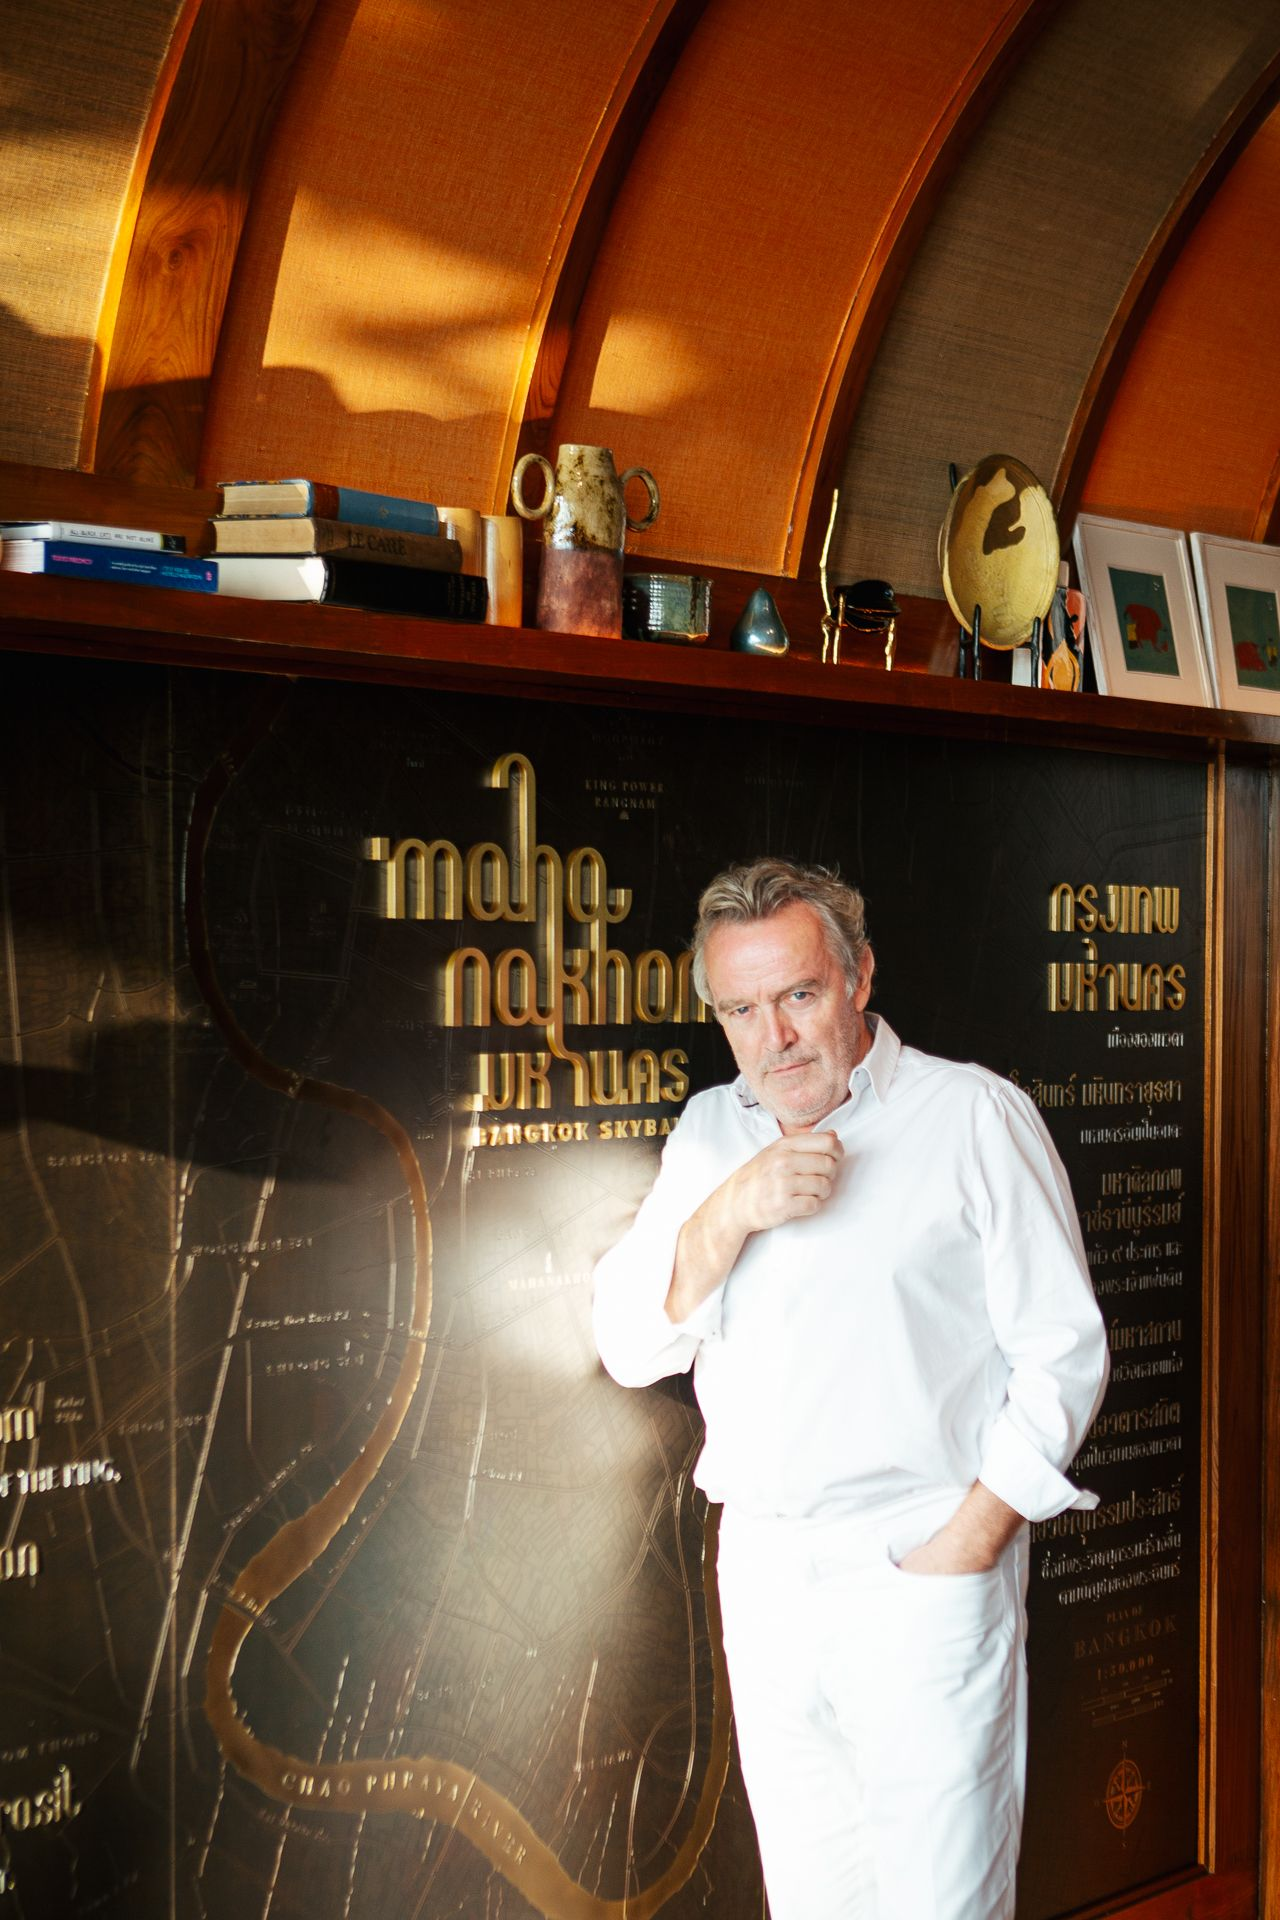 A Date With Award-Winning French Chef Alain Passard